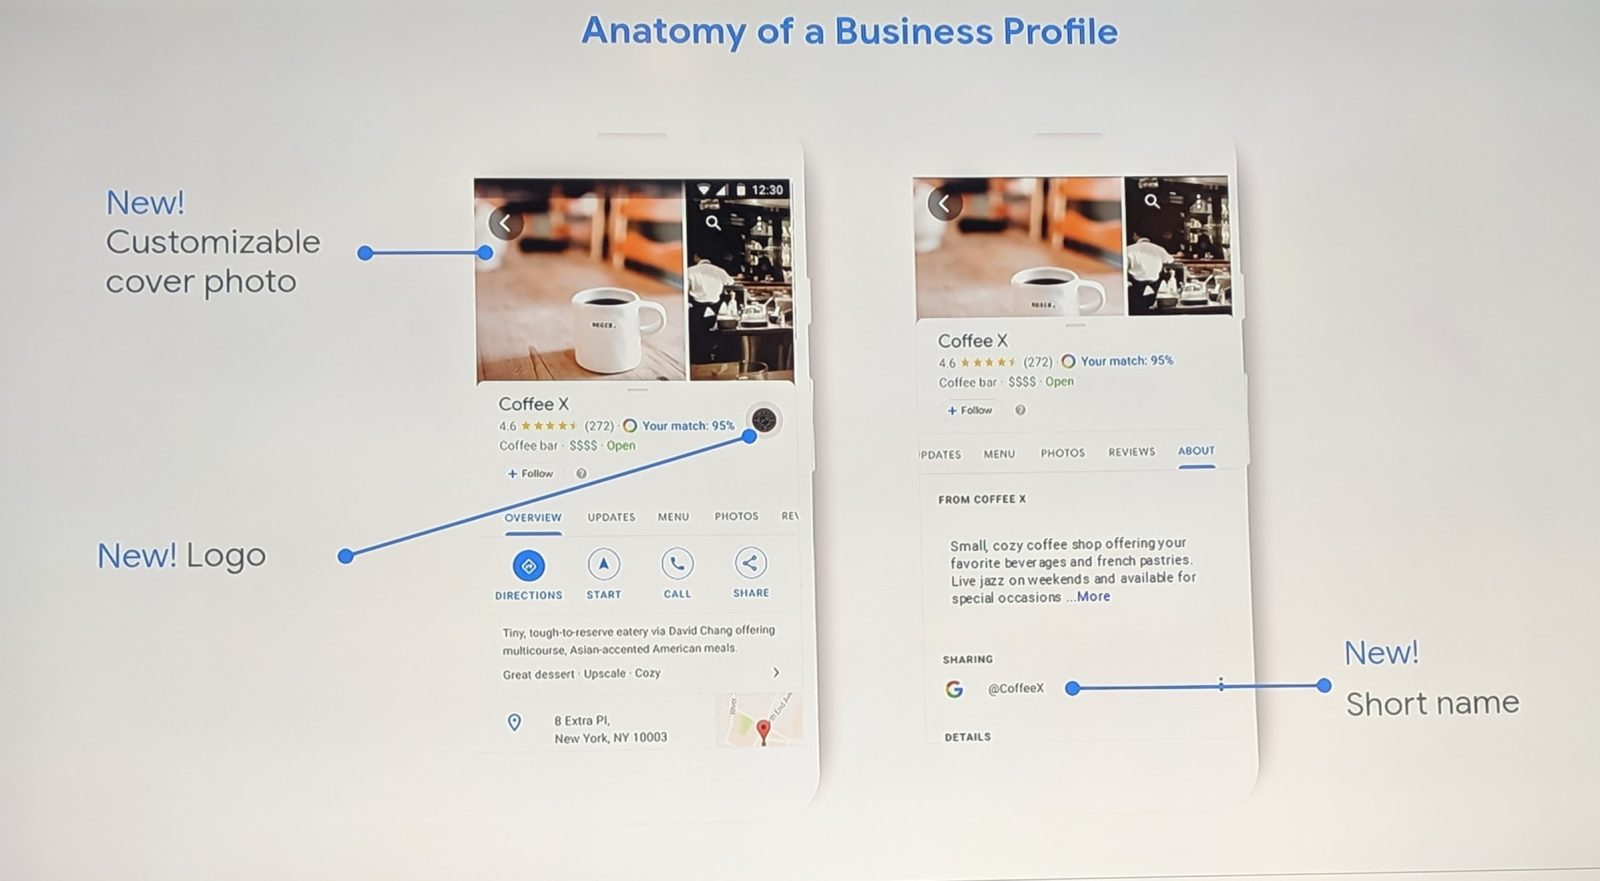 Google for Small Business is an easy portal to pull more businesses into its ecosystem